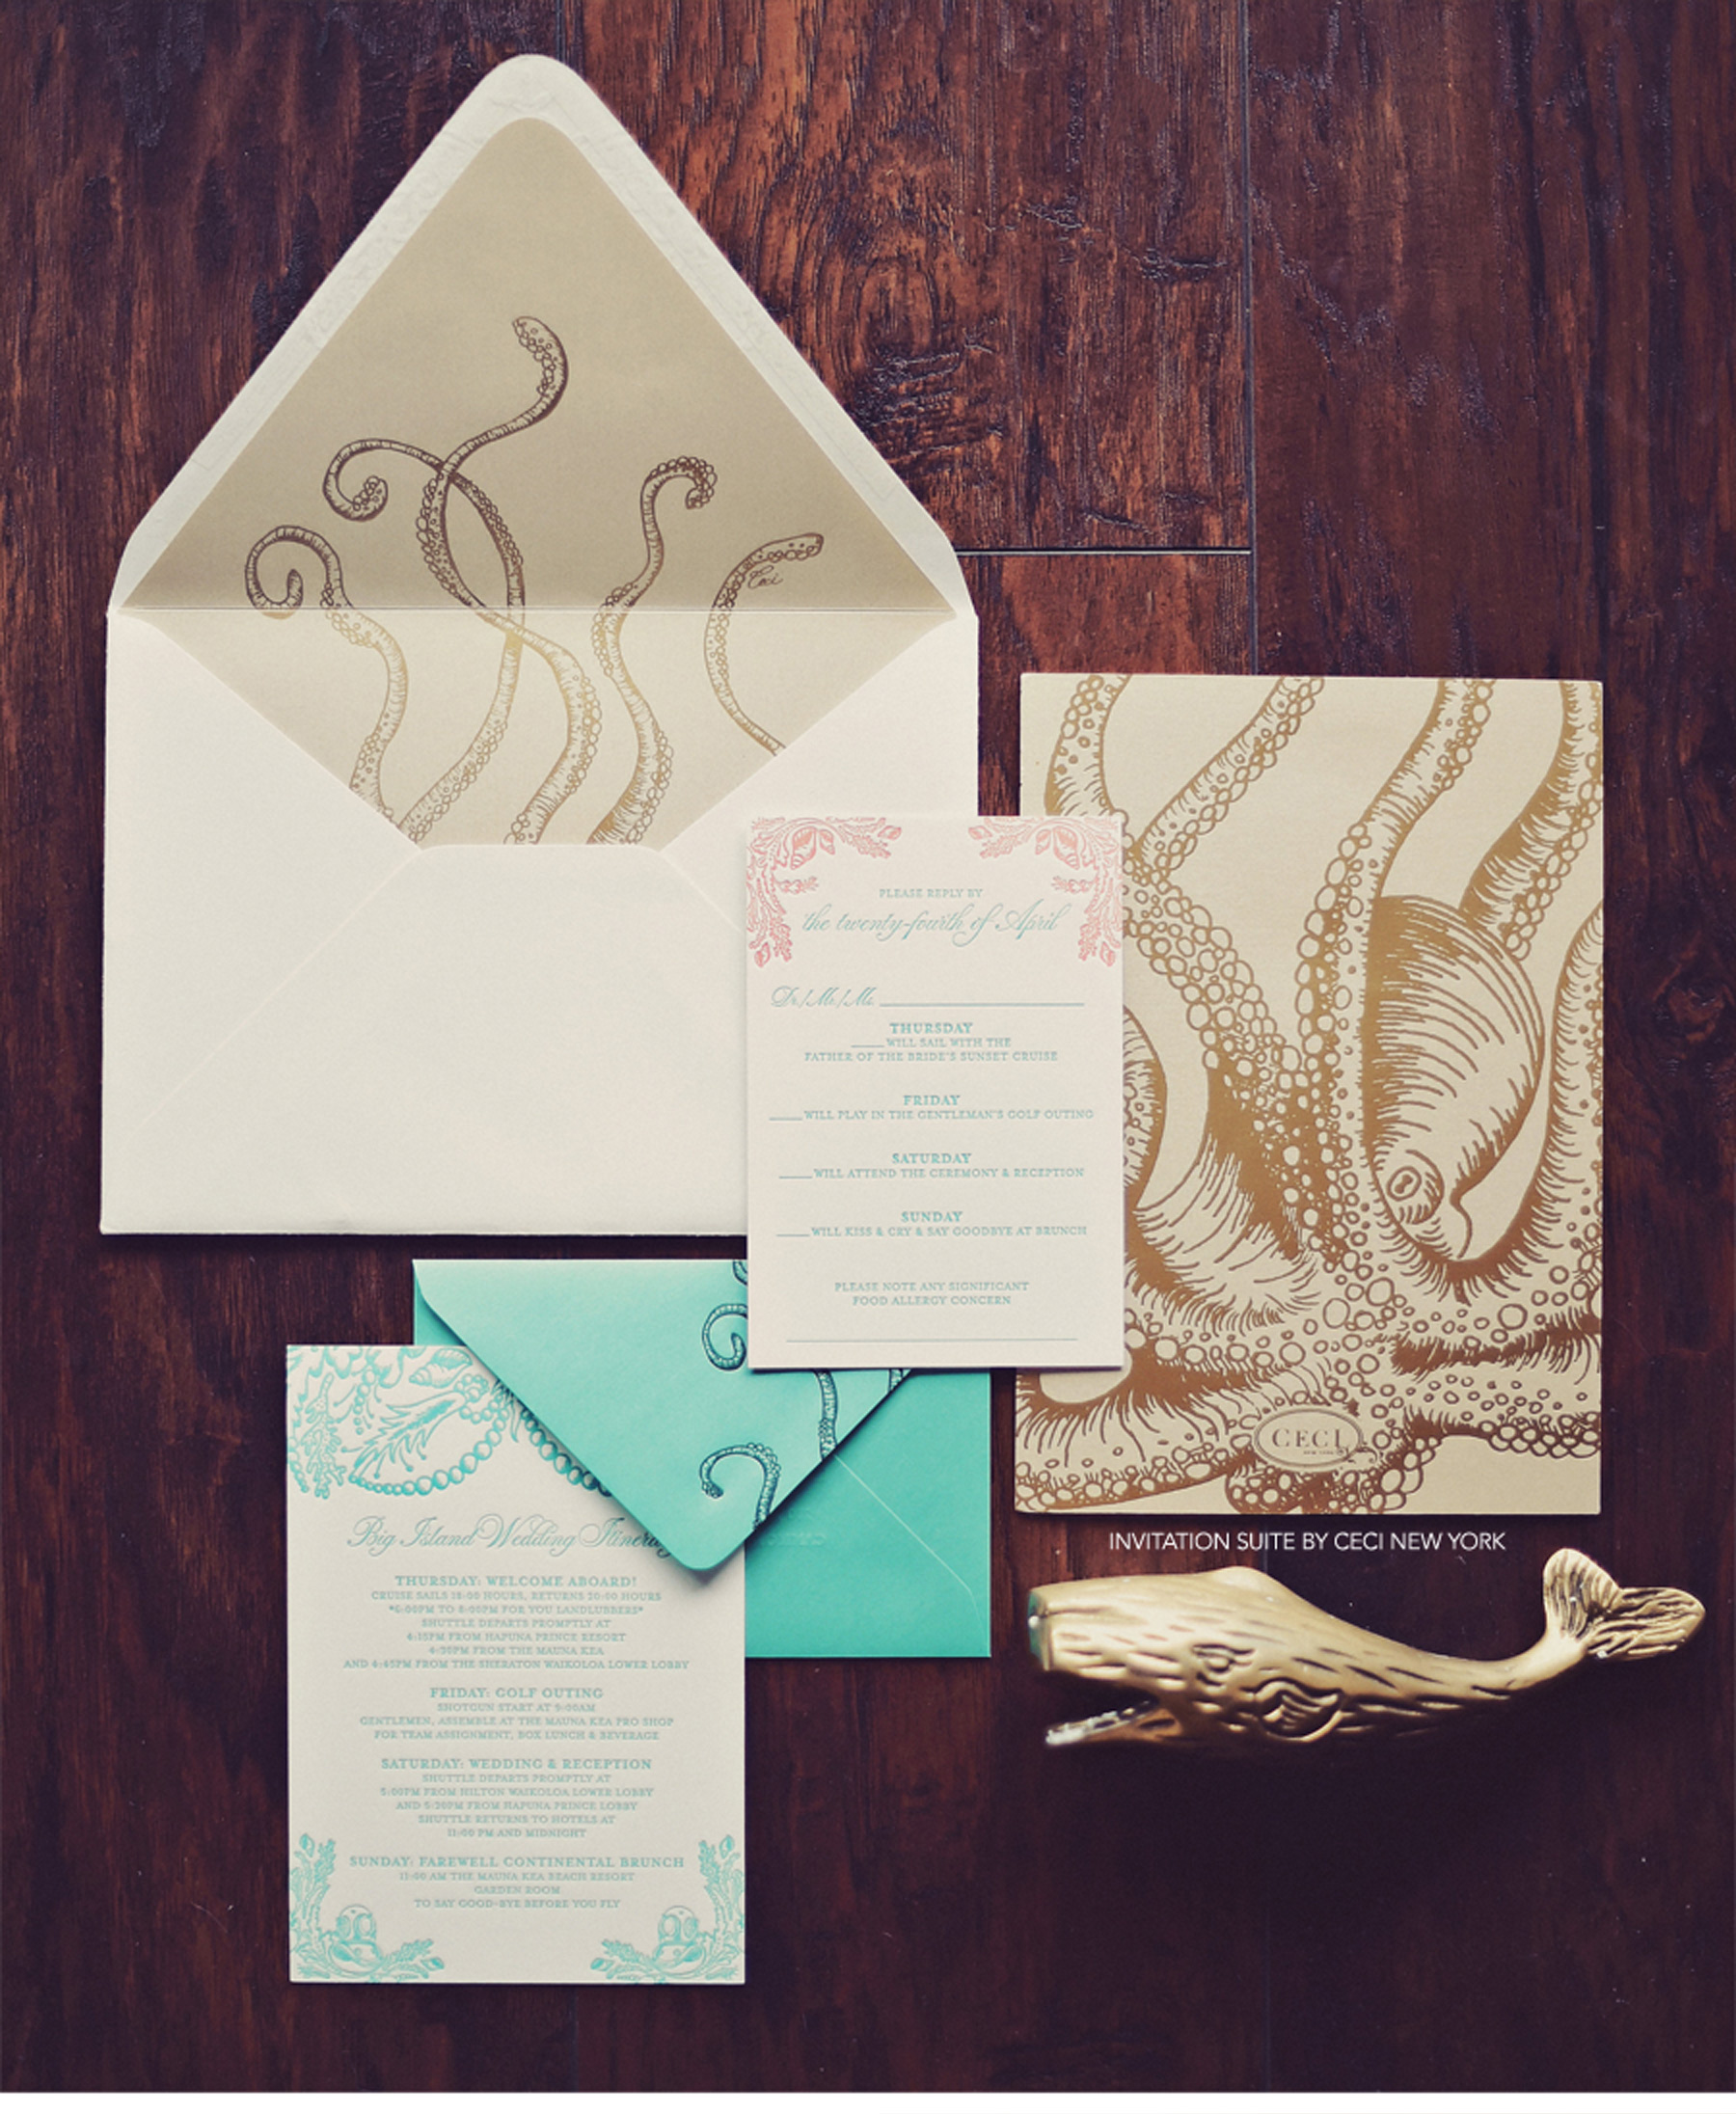 Our Muse - Tropical Hawaiian Wedding - Be inspired by Kelly & Kaniela's tropical, vintage Hawaiian wedding - octopus, aquatic, tropical, gold, wedding, invitation, ceci new york, crest, rings, getting ready, dress, shoes, portrait, bridesmaid, hawaii, big island, lei, groomsmen